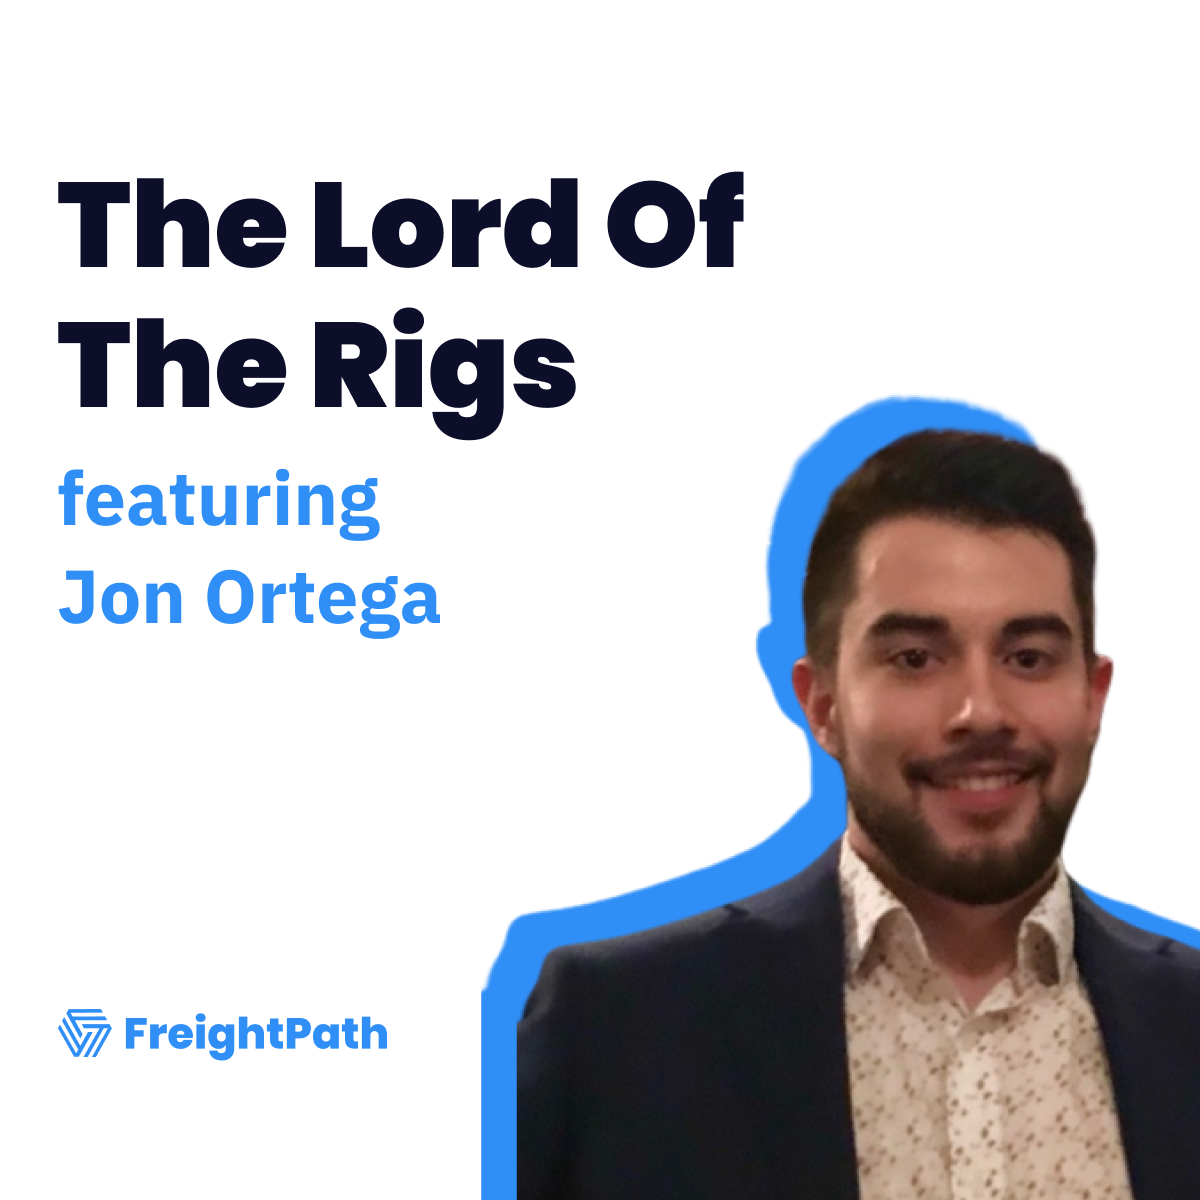 Out With The Old, In With The New - How To Scale A Freight Brokerage In 2020 With Jon Ortega